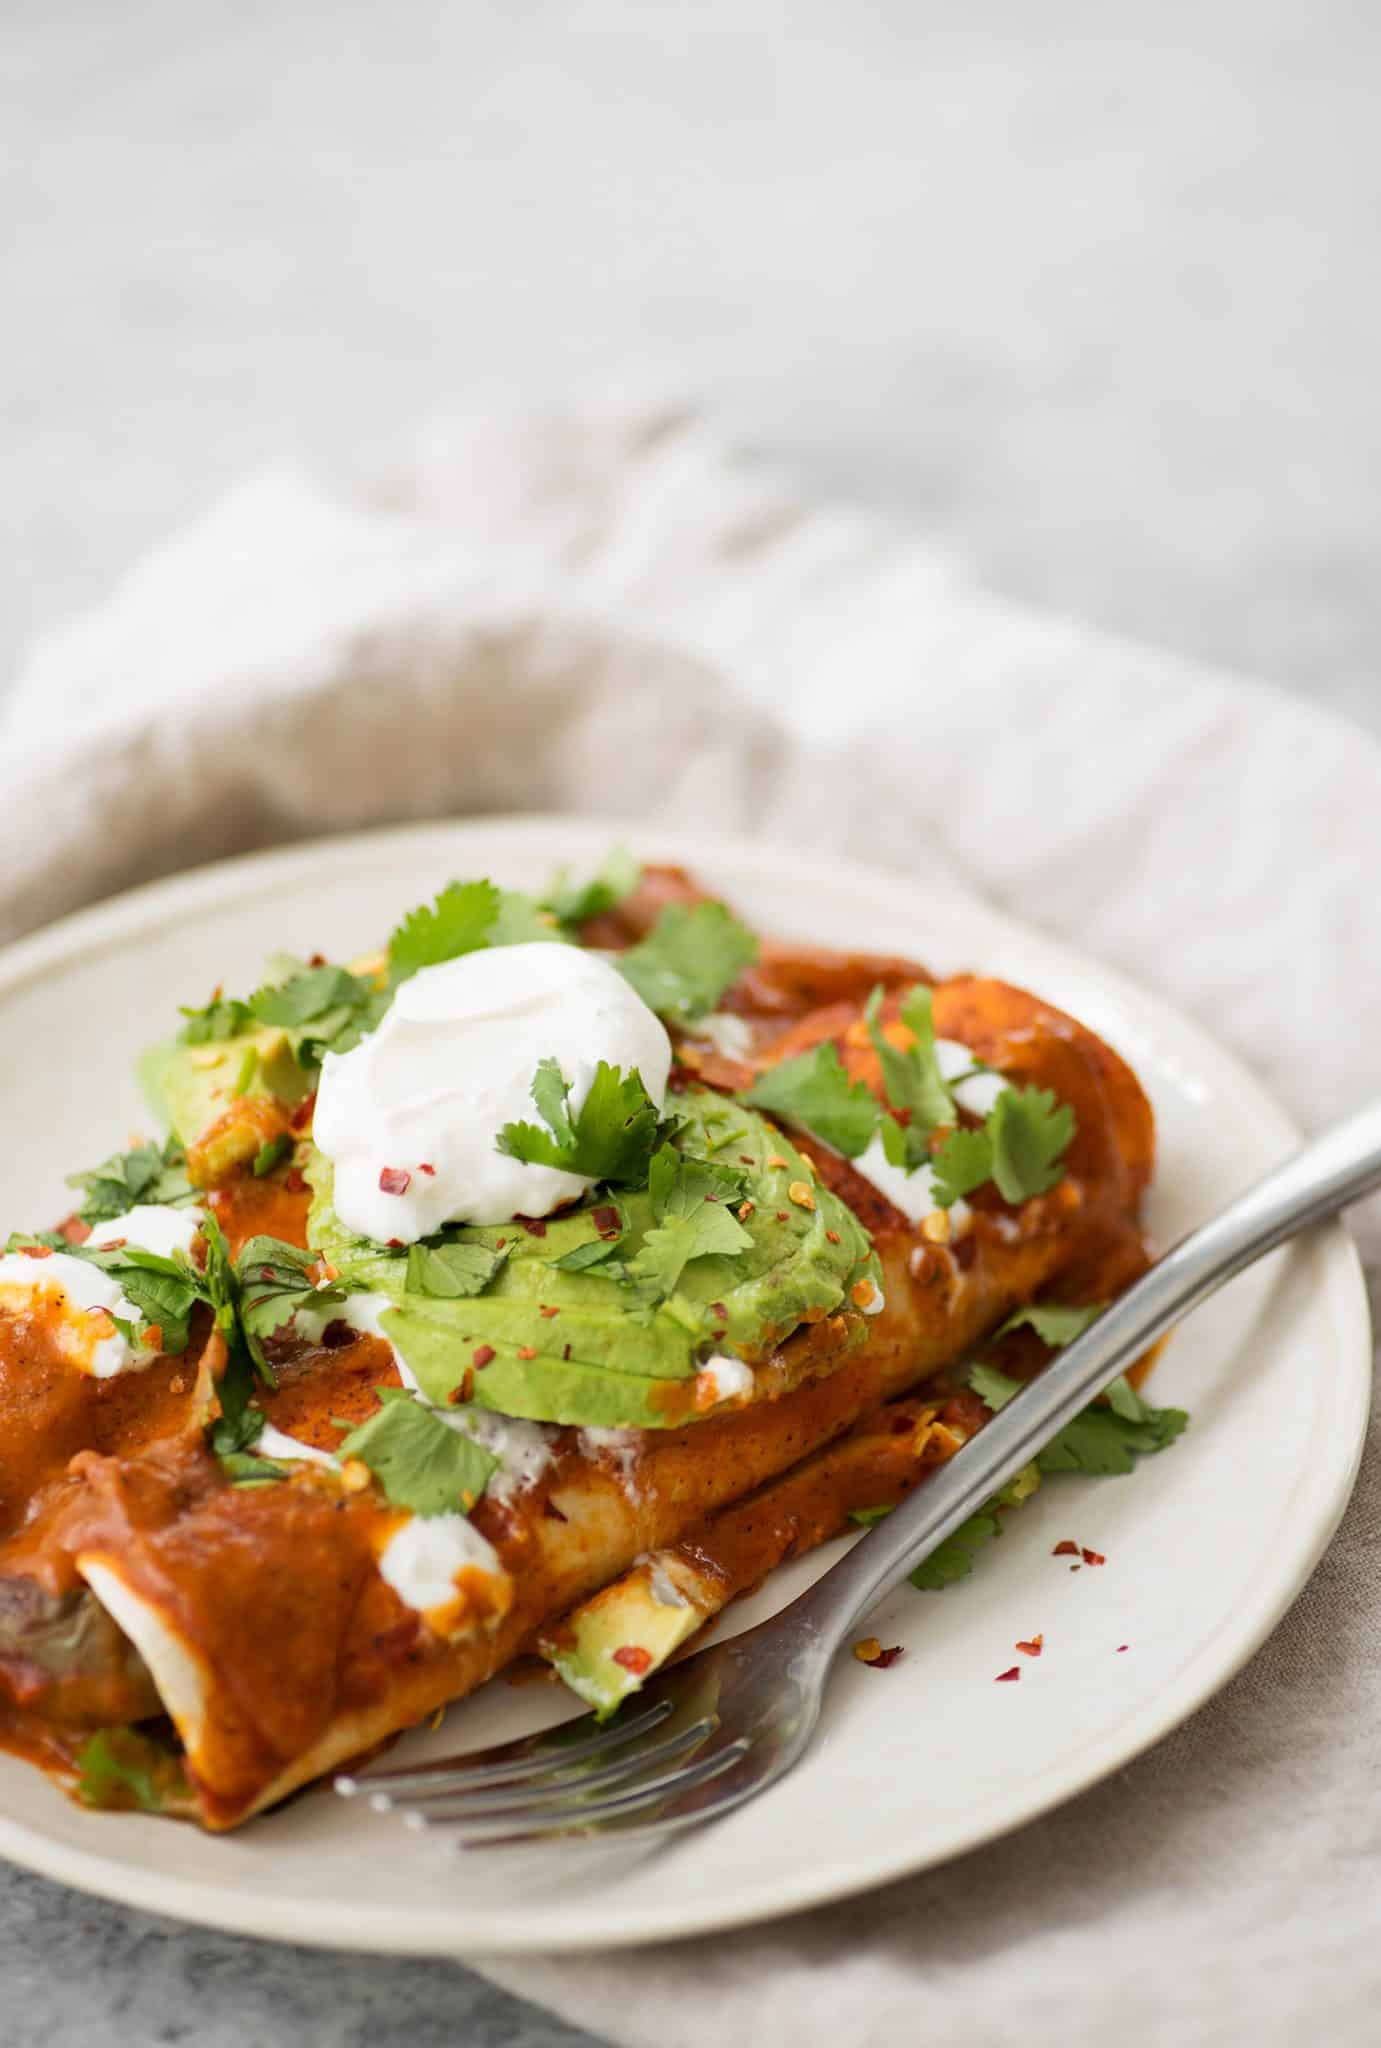 Vegan Fajita Enchiladas! These enchiladas are perfect for Cinco de Mayo. Roasted peppers, onions and beans covered in a homemade enchilada sauce and avocado.   www.delishknowledge.com